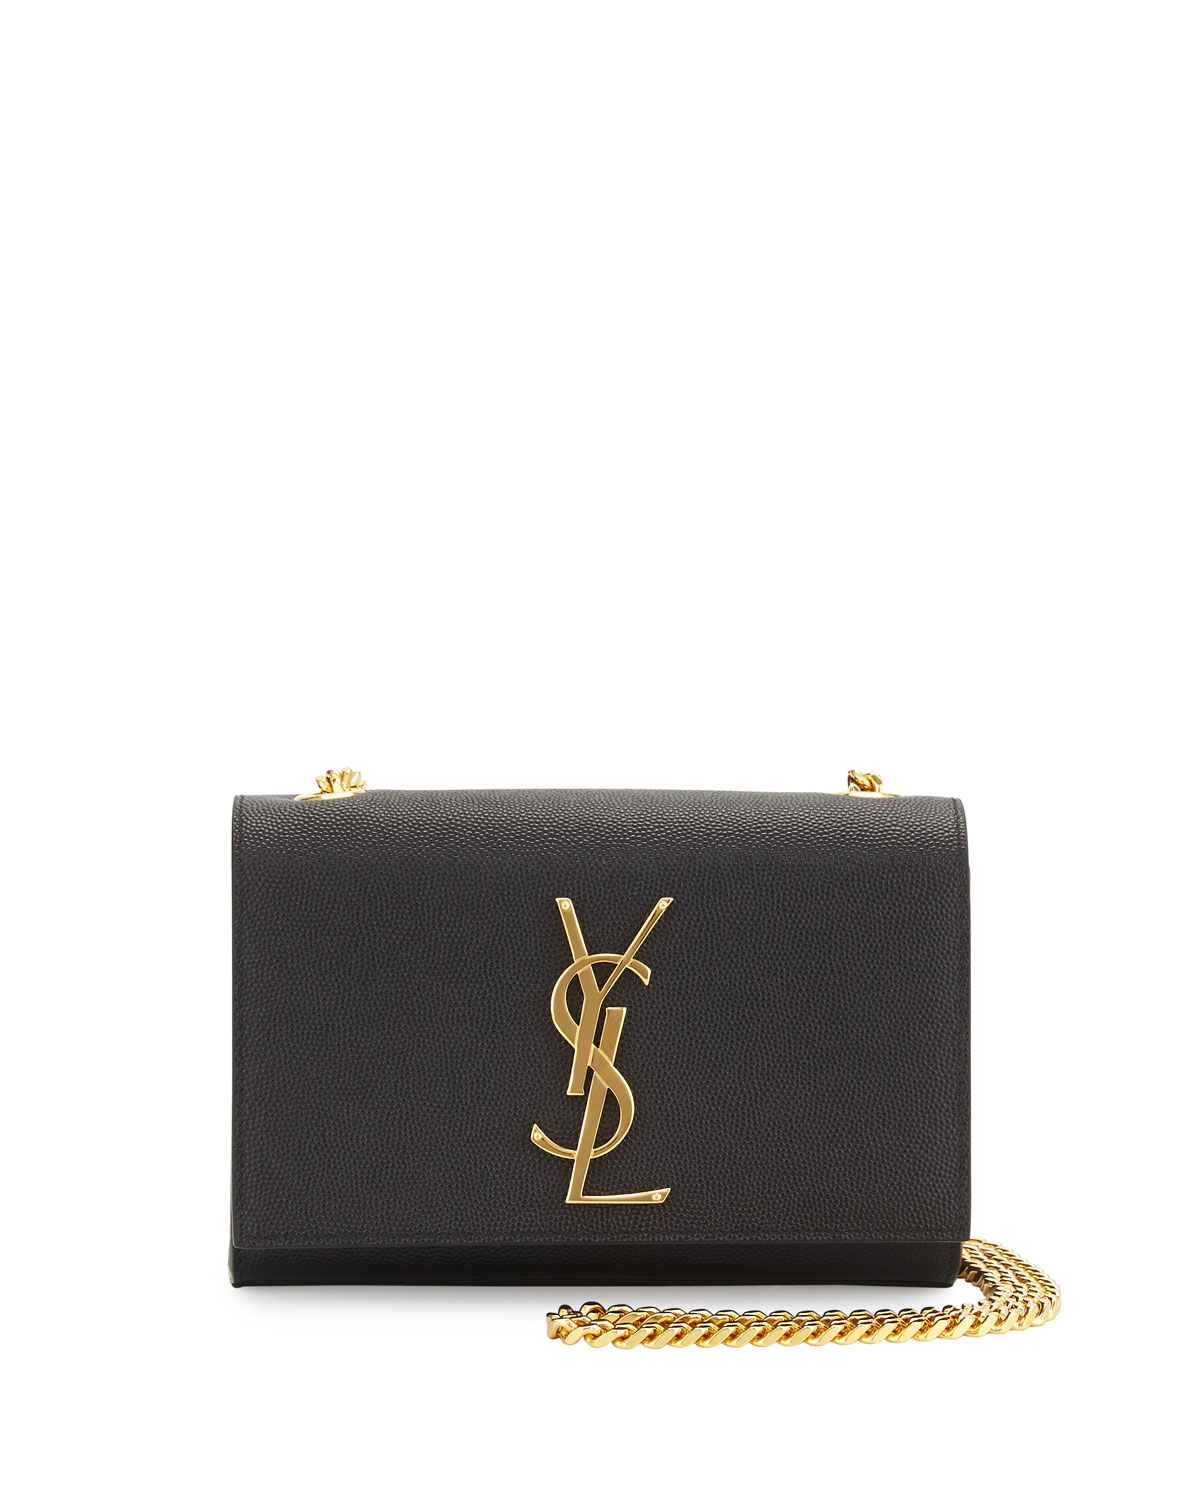 bebbe79bf529 Saint Laurent Kate Monogram YSL Leather Crossbody Bag